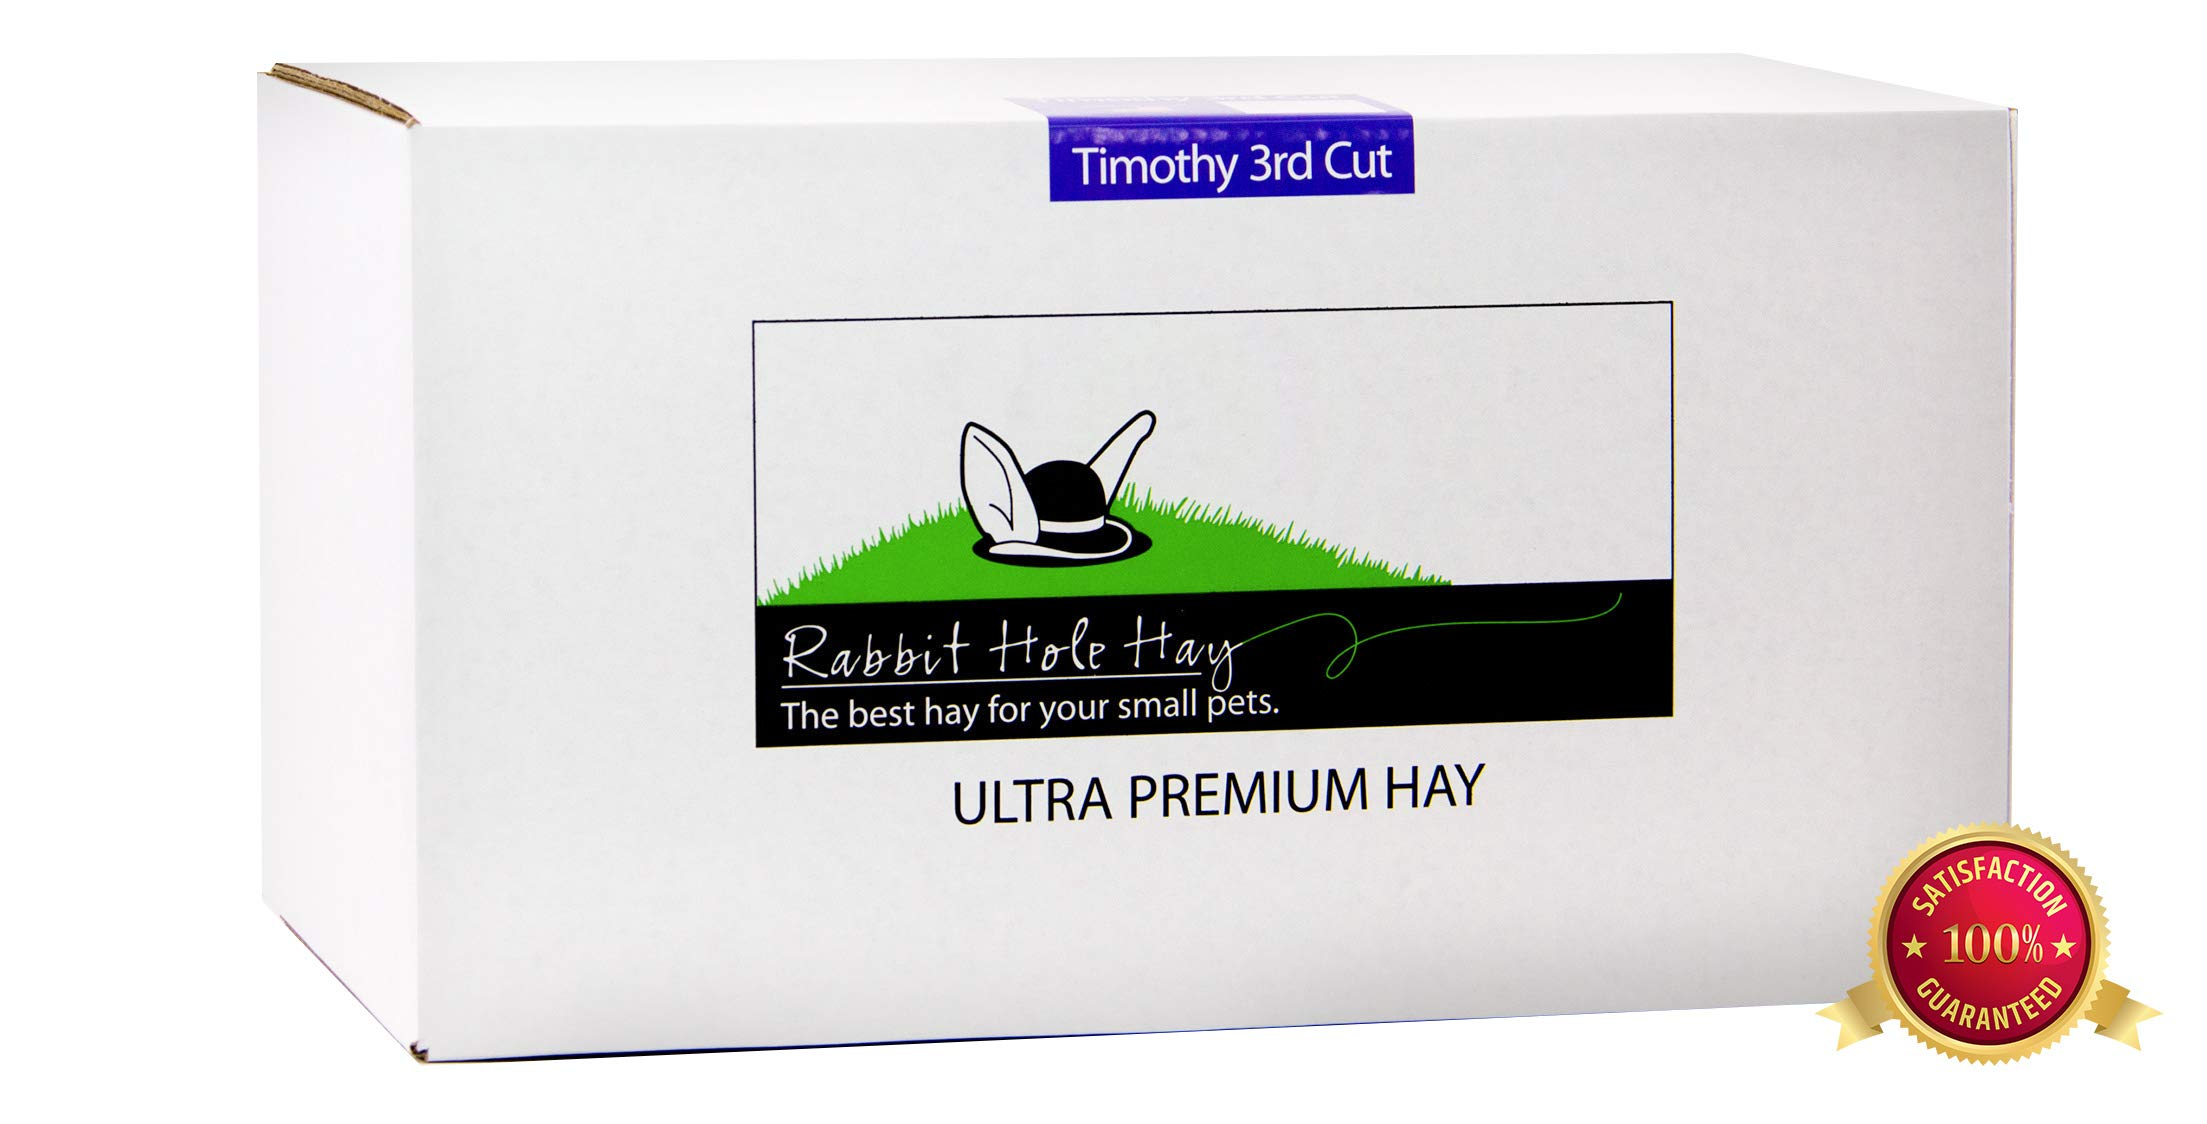 Rabbit Hole Hay Ultra Premium, Hand Packed Third Cut Timothy Hay for Your Small Pet Rabbit, Chinchilla, or Guinea Pig (20 lbs.)